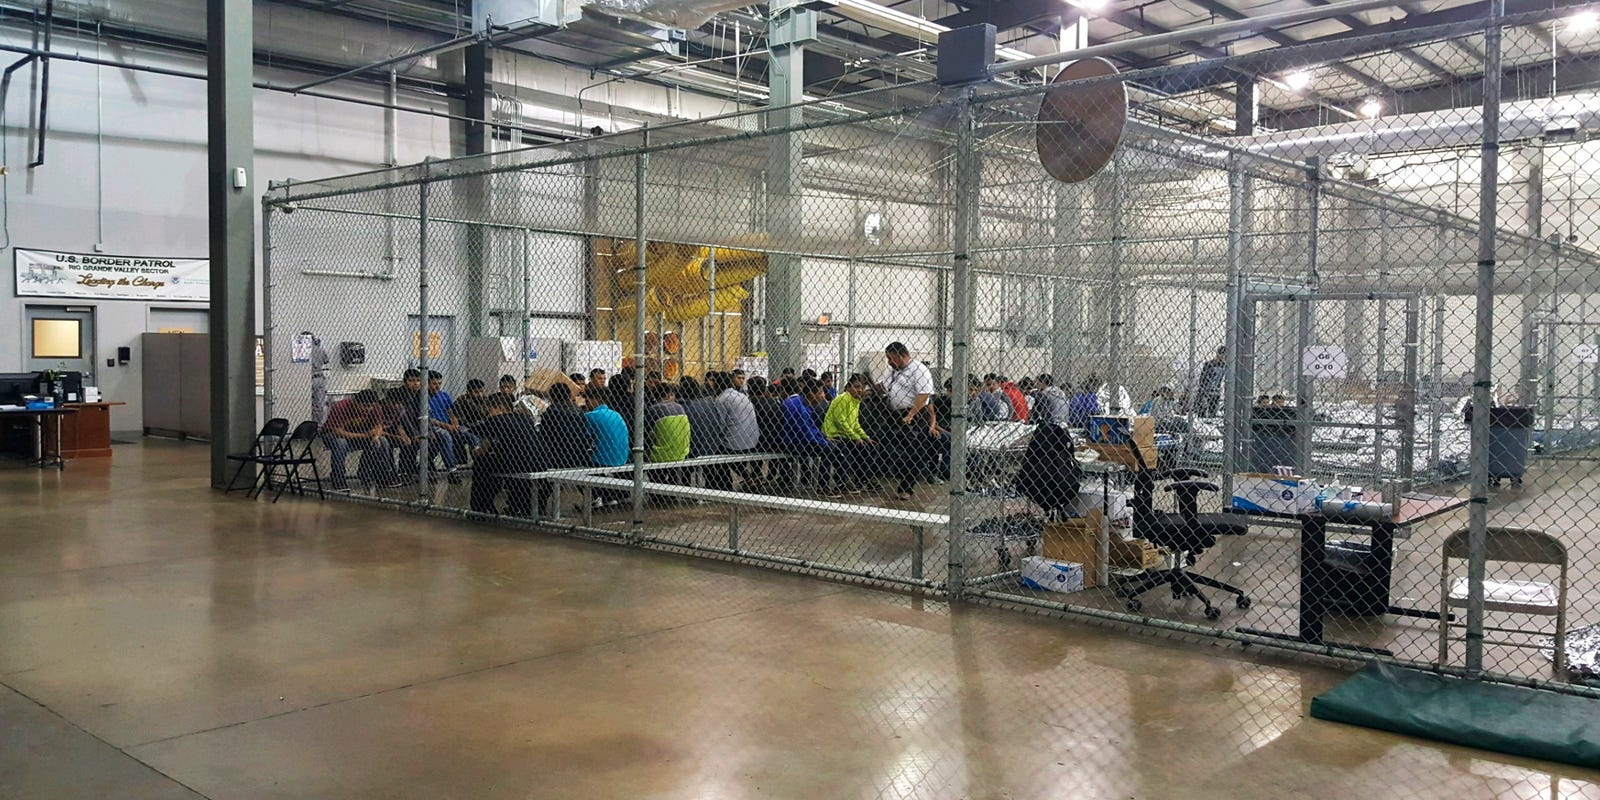 Casa & Co Milazzo did a flight attendant see immigrant children on a flight to